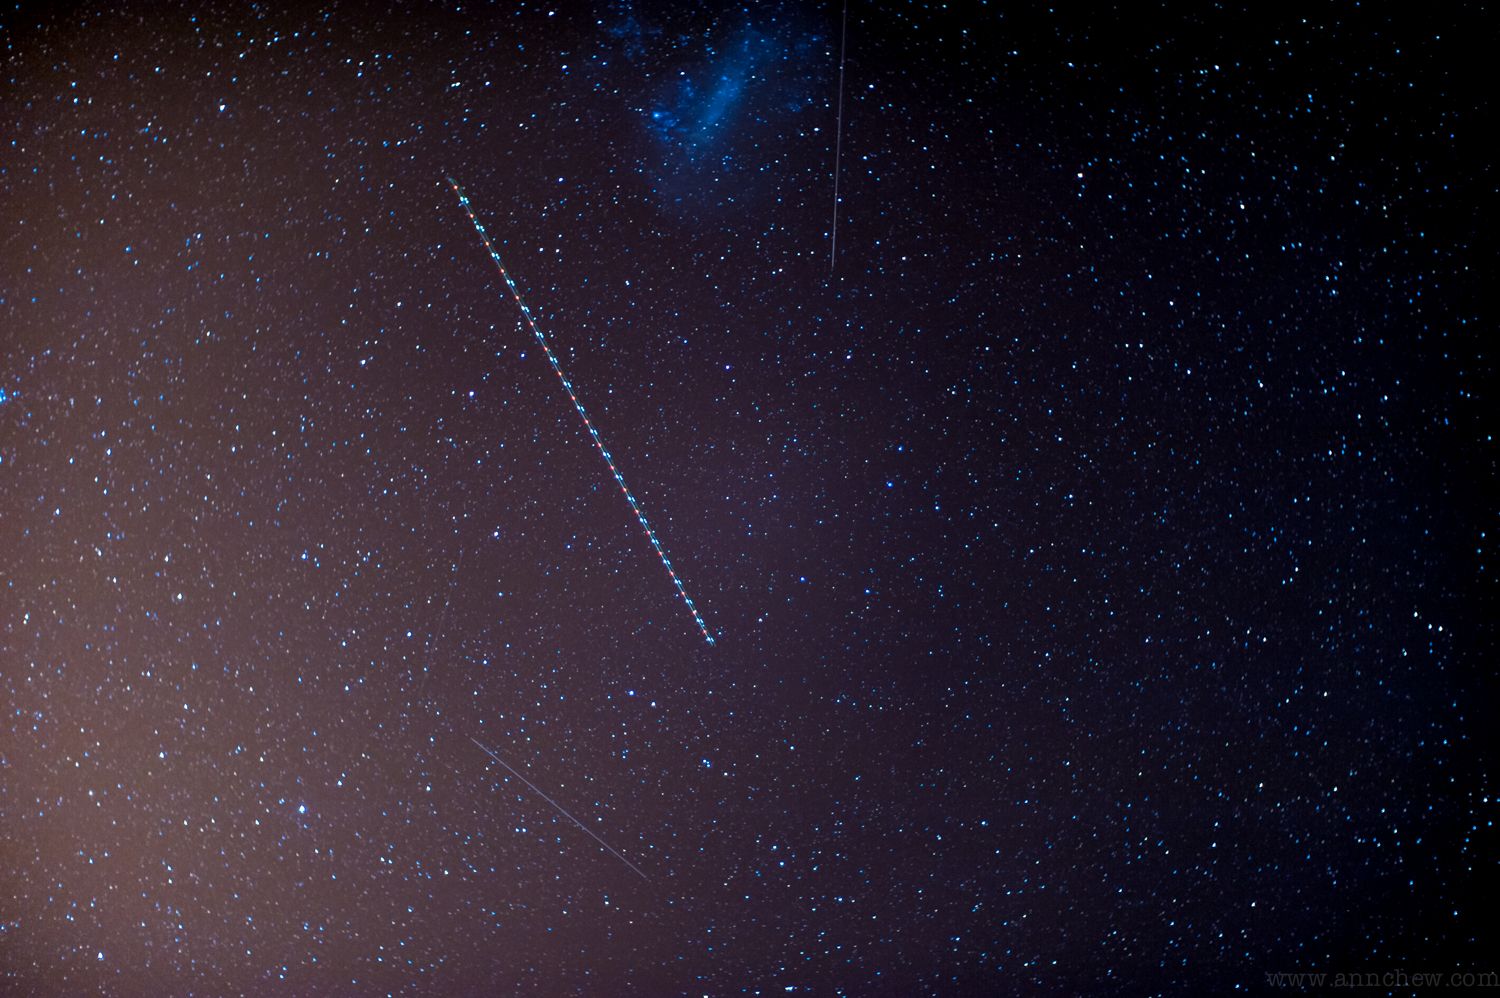 Greater Magellanic cloud, an airplane, and some satellites or shooting stars? who knows...